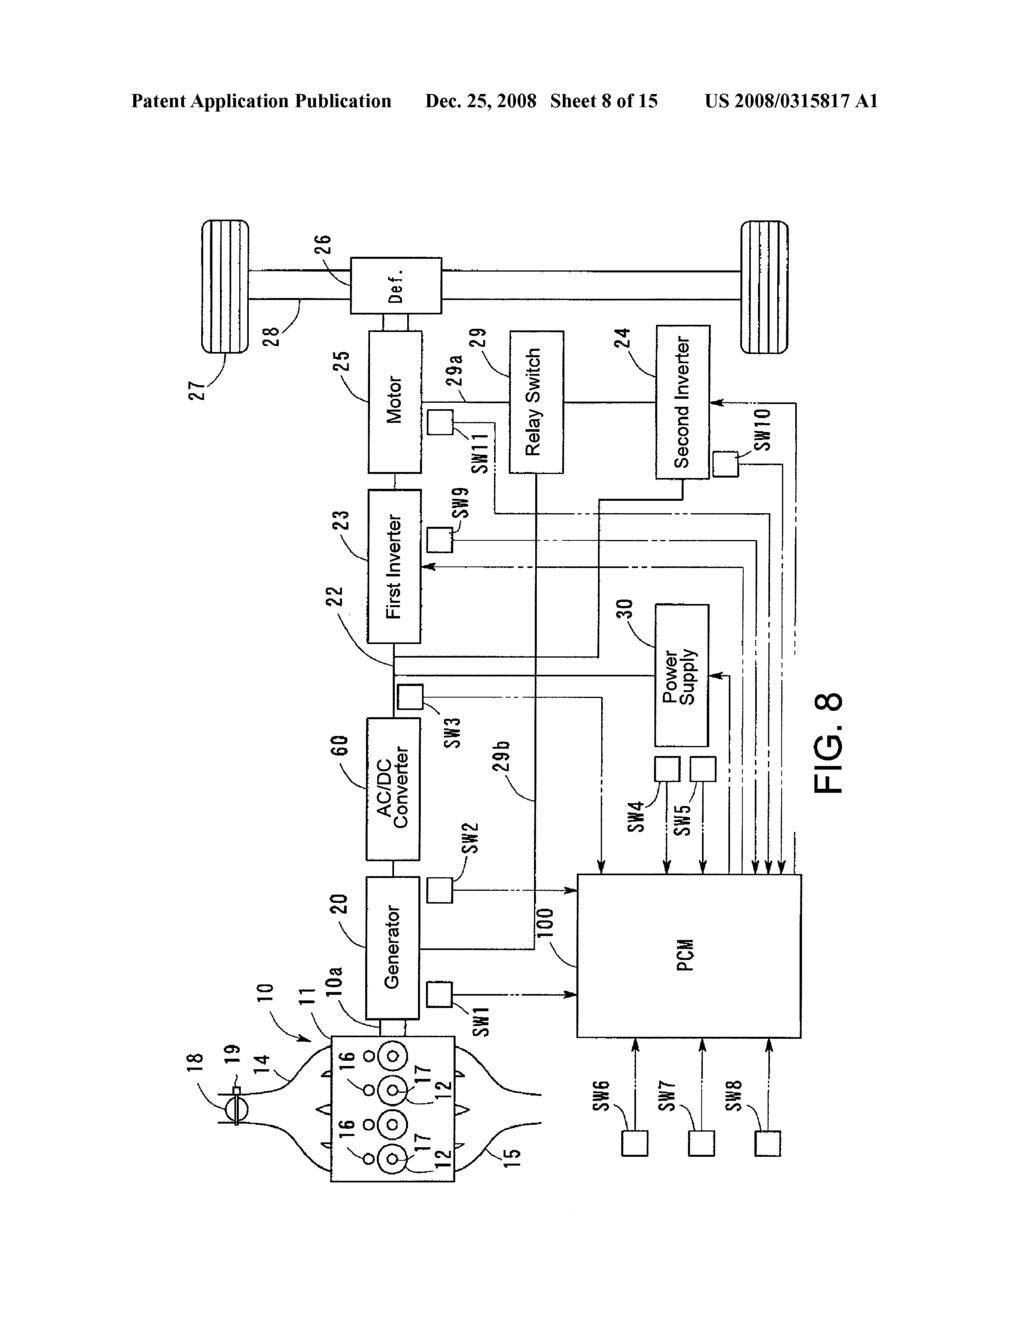 CONTROL SYSTEM FOR A HYBRID ELECTRIC VEHICLE AND A METHOD FOR ... on electrical diagram, engine assembly diagram, electric installation, electric wiring diagram, electric switch diagram, electric amplifier, electric cable diagram, electric transformer diagram, electric service diagram, electric warning, electric panel diagram, electric parts list, electric breadboard diagram, electric engine diagram, electric relay diagram, electric system diagram, cooling system diagram, electric motor diagram, electric box diagram, electric wire diagram,